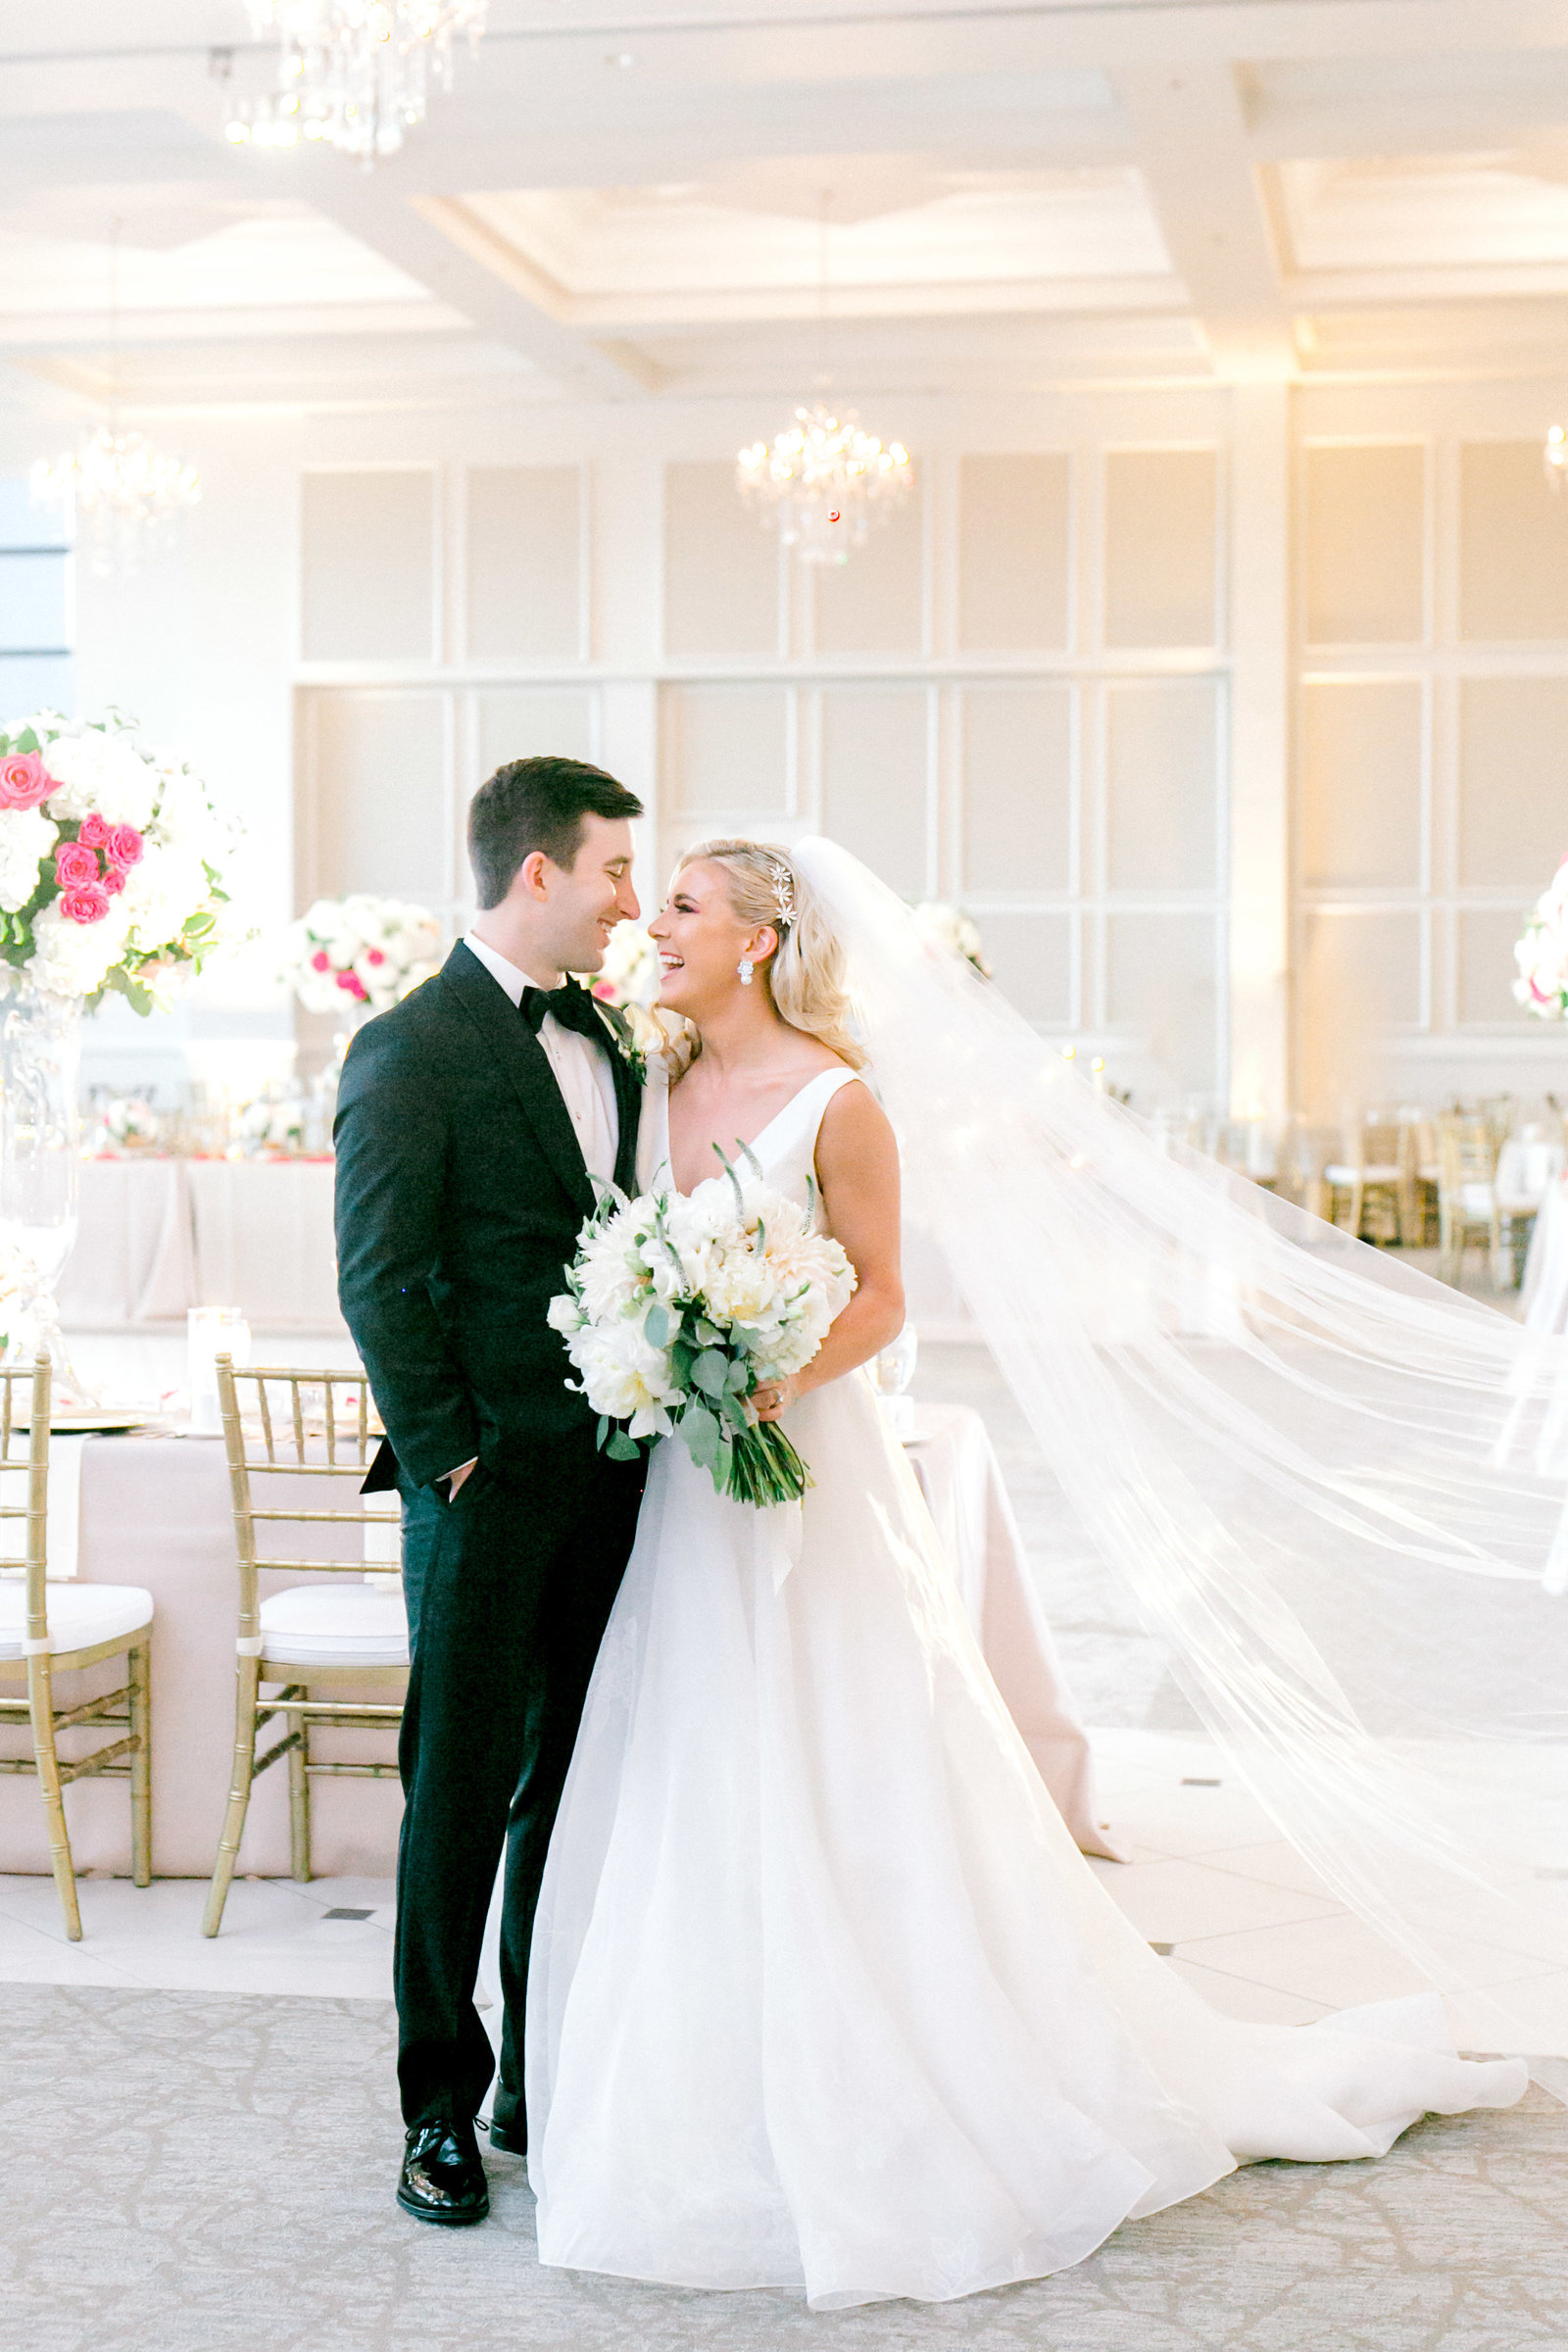 Karly-and-Reid-Wedding-blog-by-Emily-Nicole-Photo-150